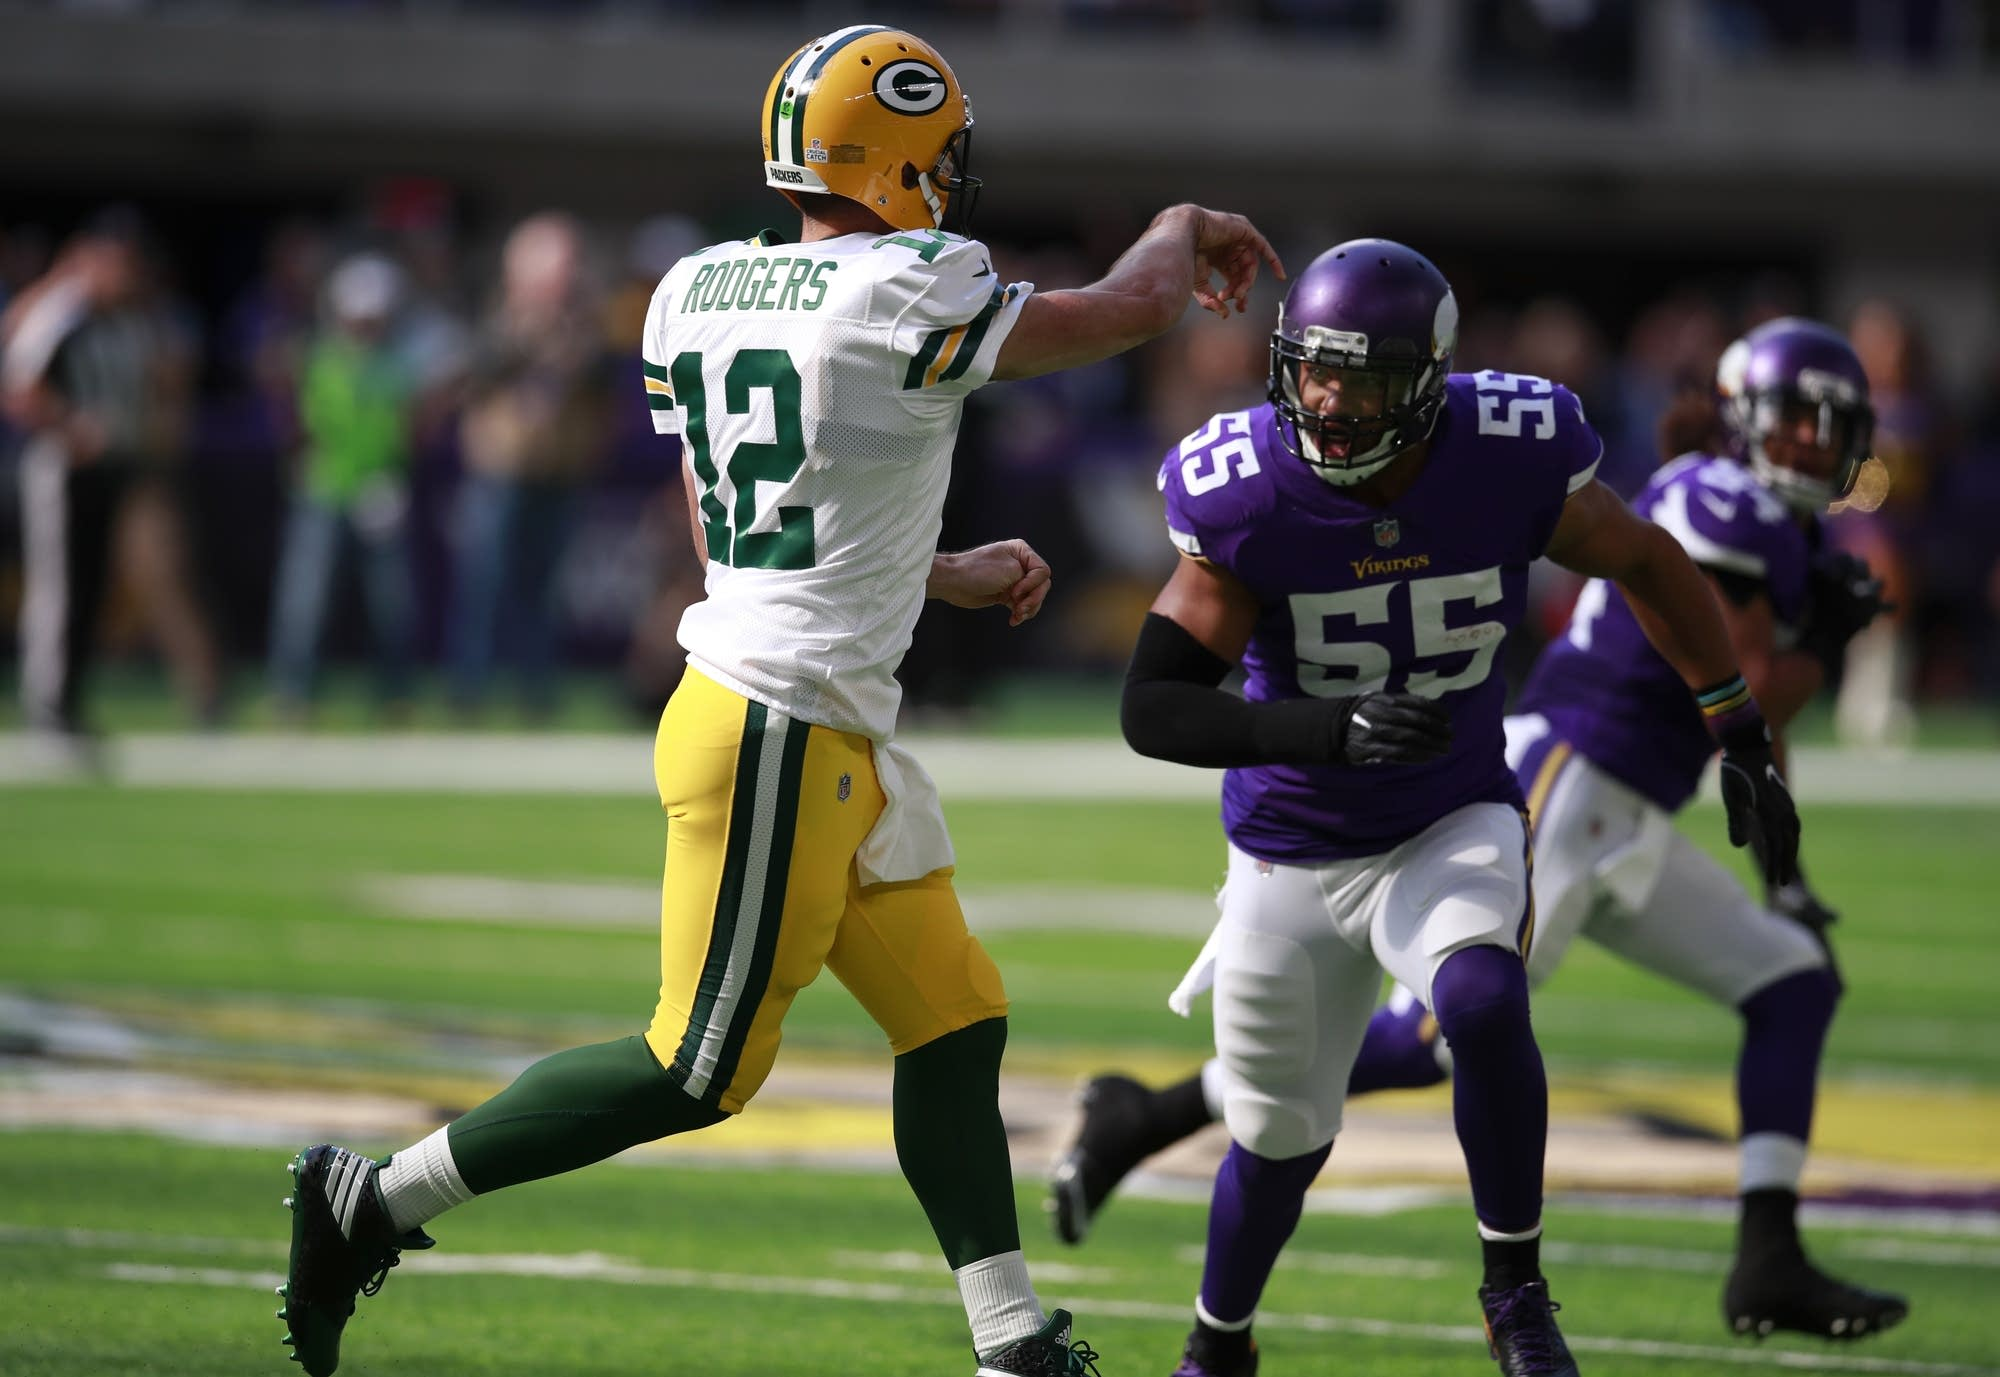 Packers WR Davante Adams ruled out for game against Vikings